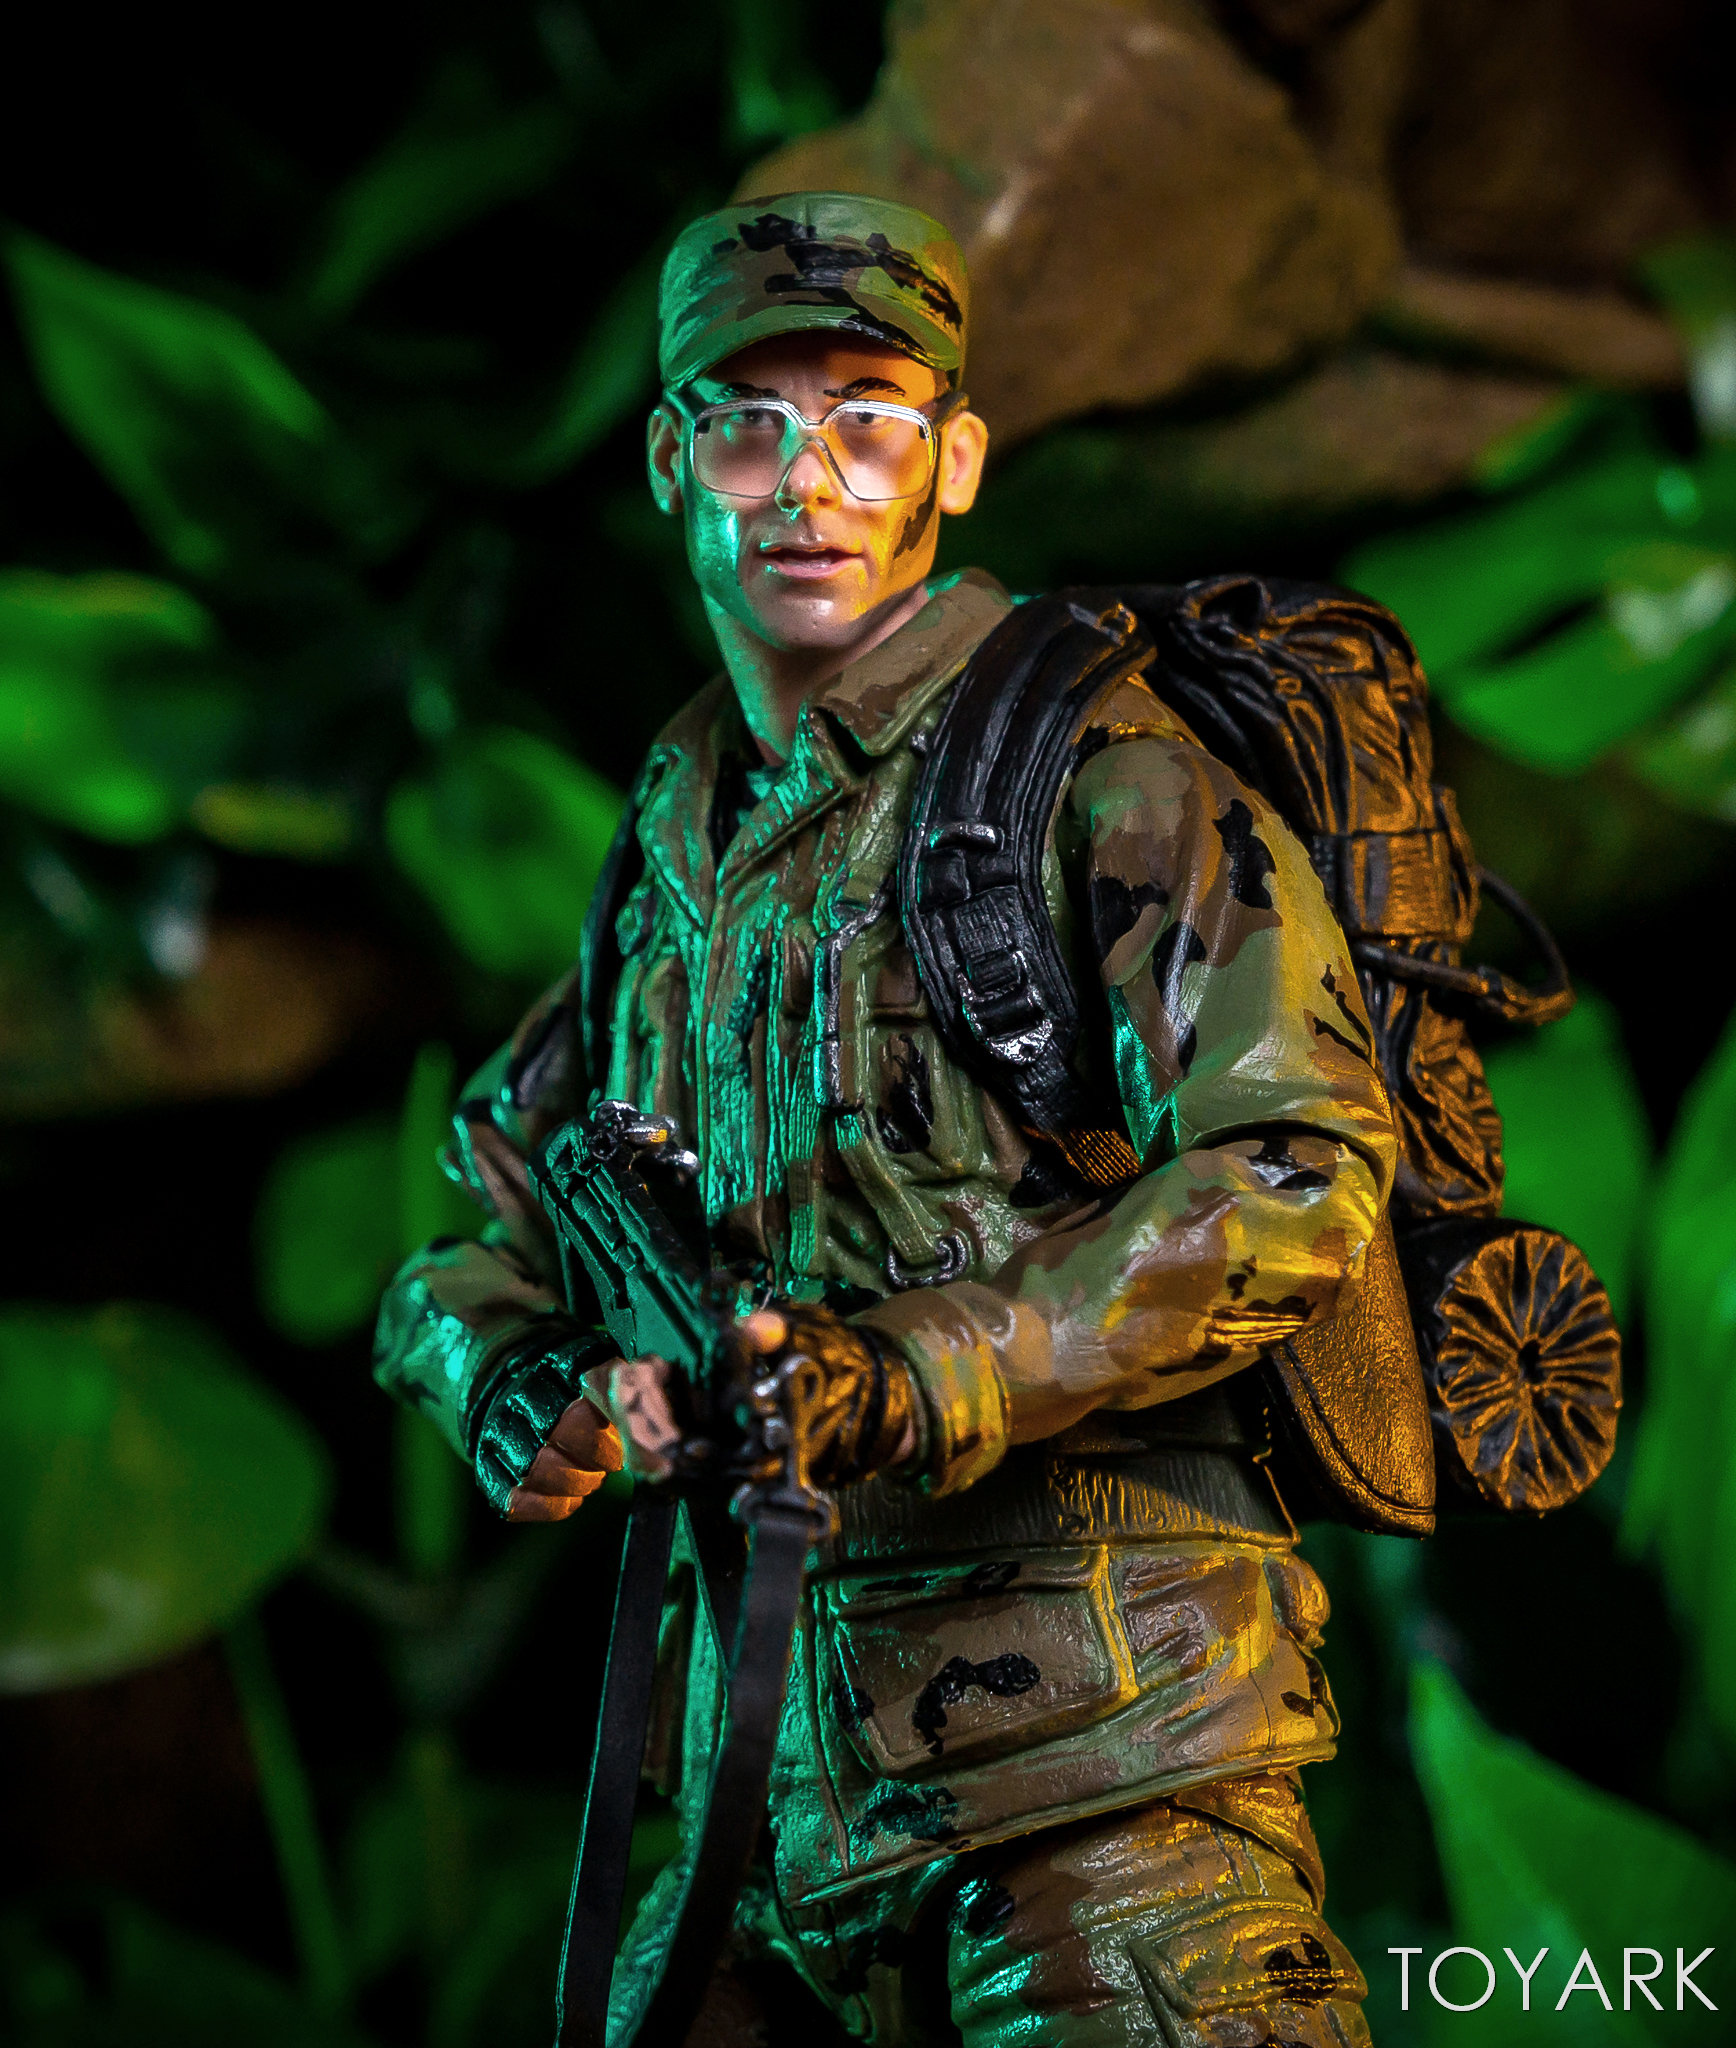 https://news.toyark.com/wp-content/uploads/sites/4/2018/07/NECA-SDCC2018-Predator-Hawkins-012.jpg